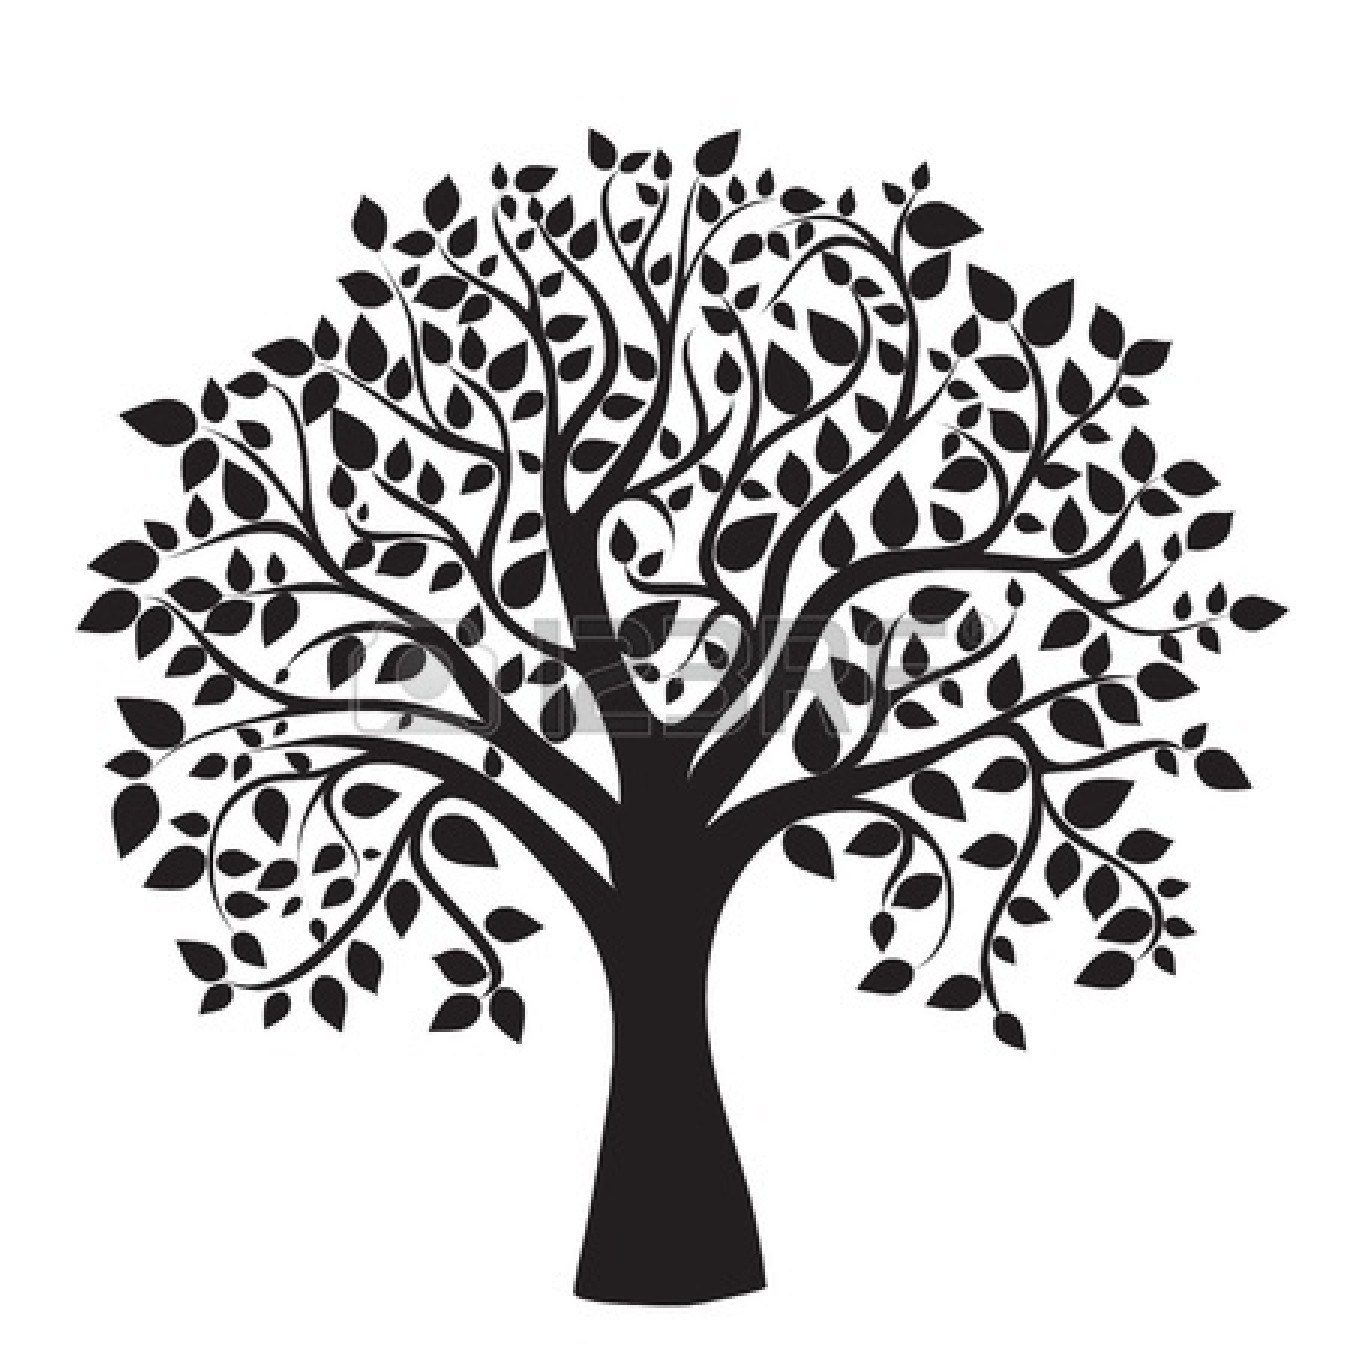 Free Family Tree Clip Clip Art Black And White Family Tree Images